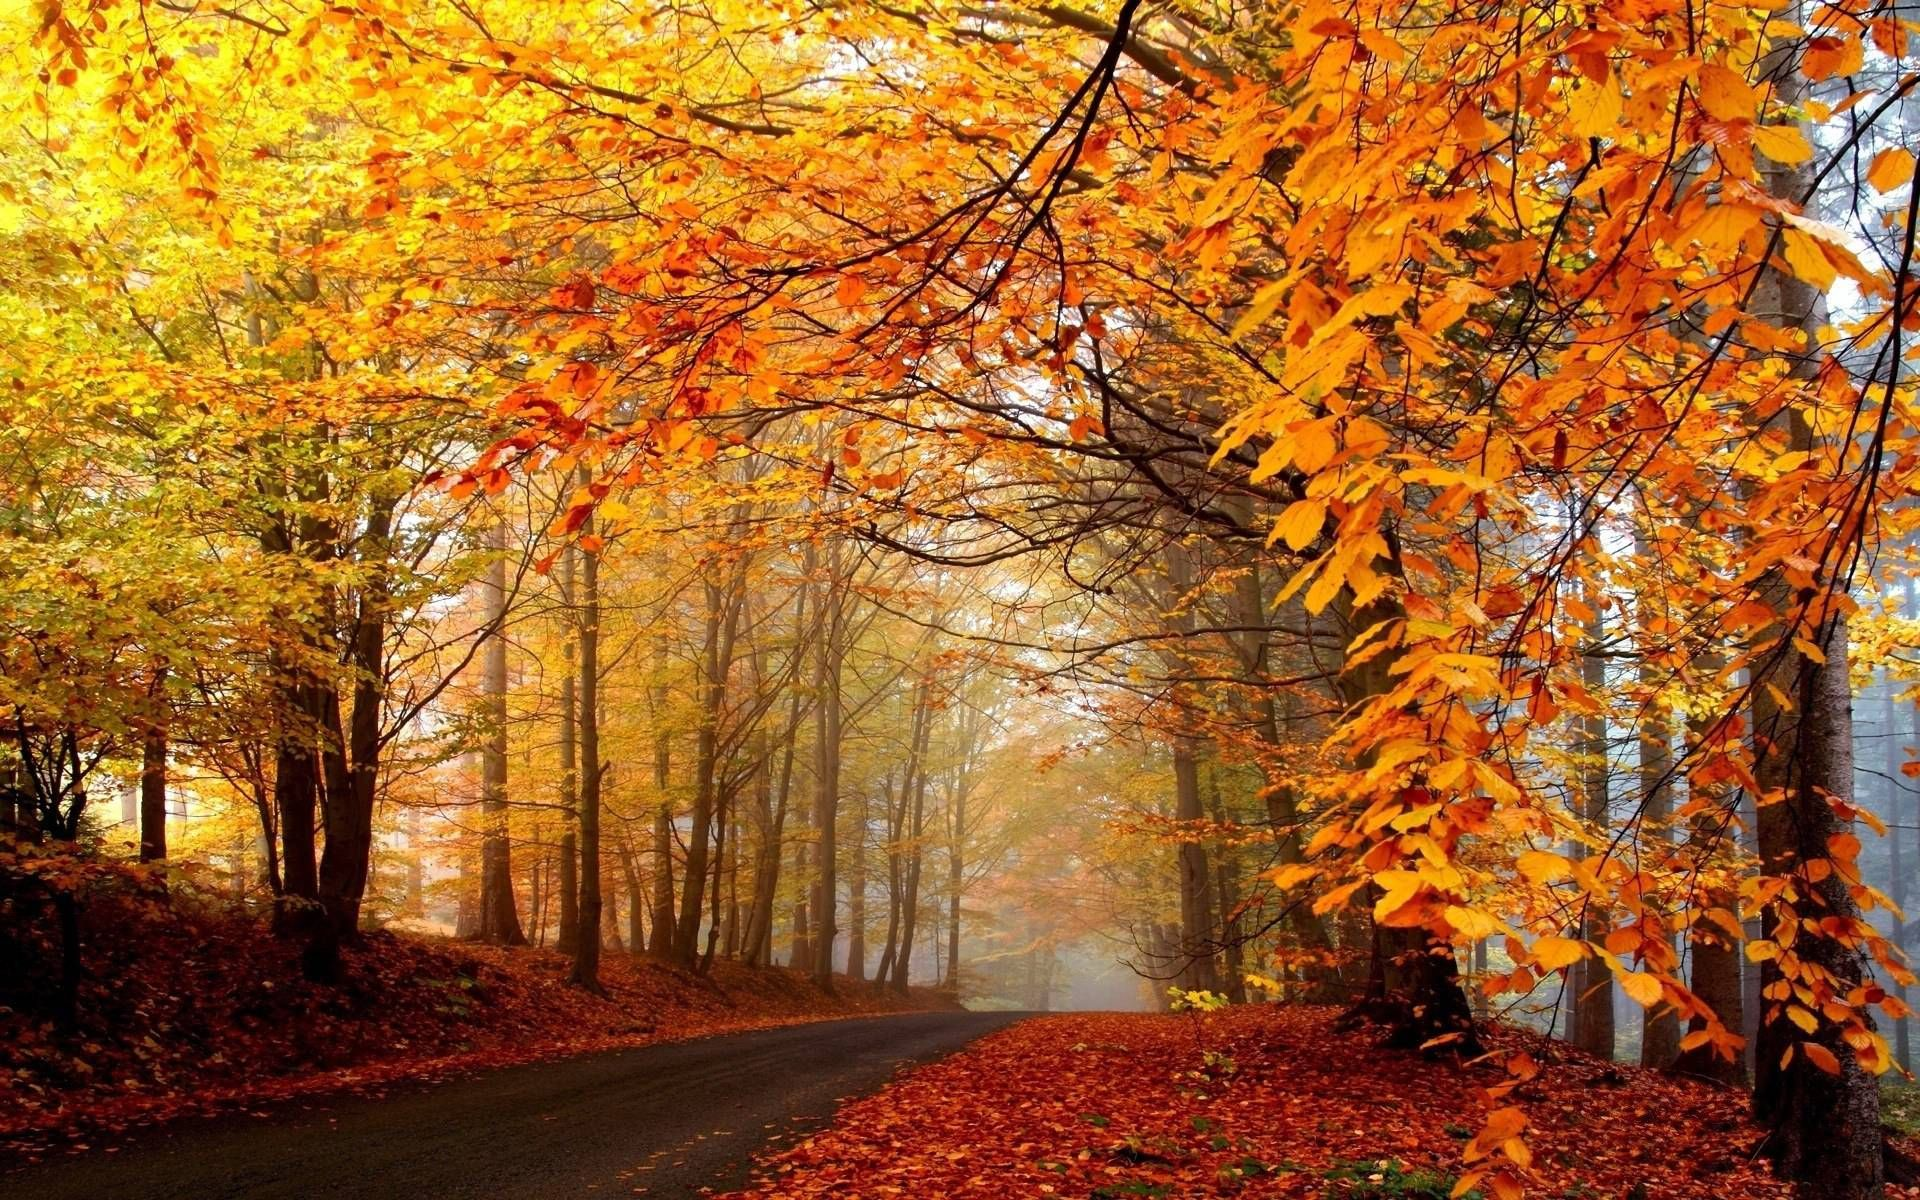 Wallpapers For Fall Trees Background Autumn Landscape Scenery Wallpaper Autumn Scenery